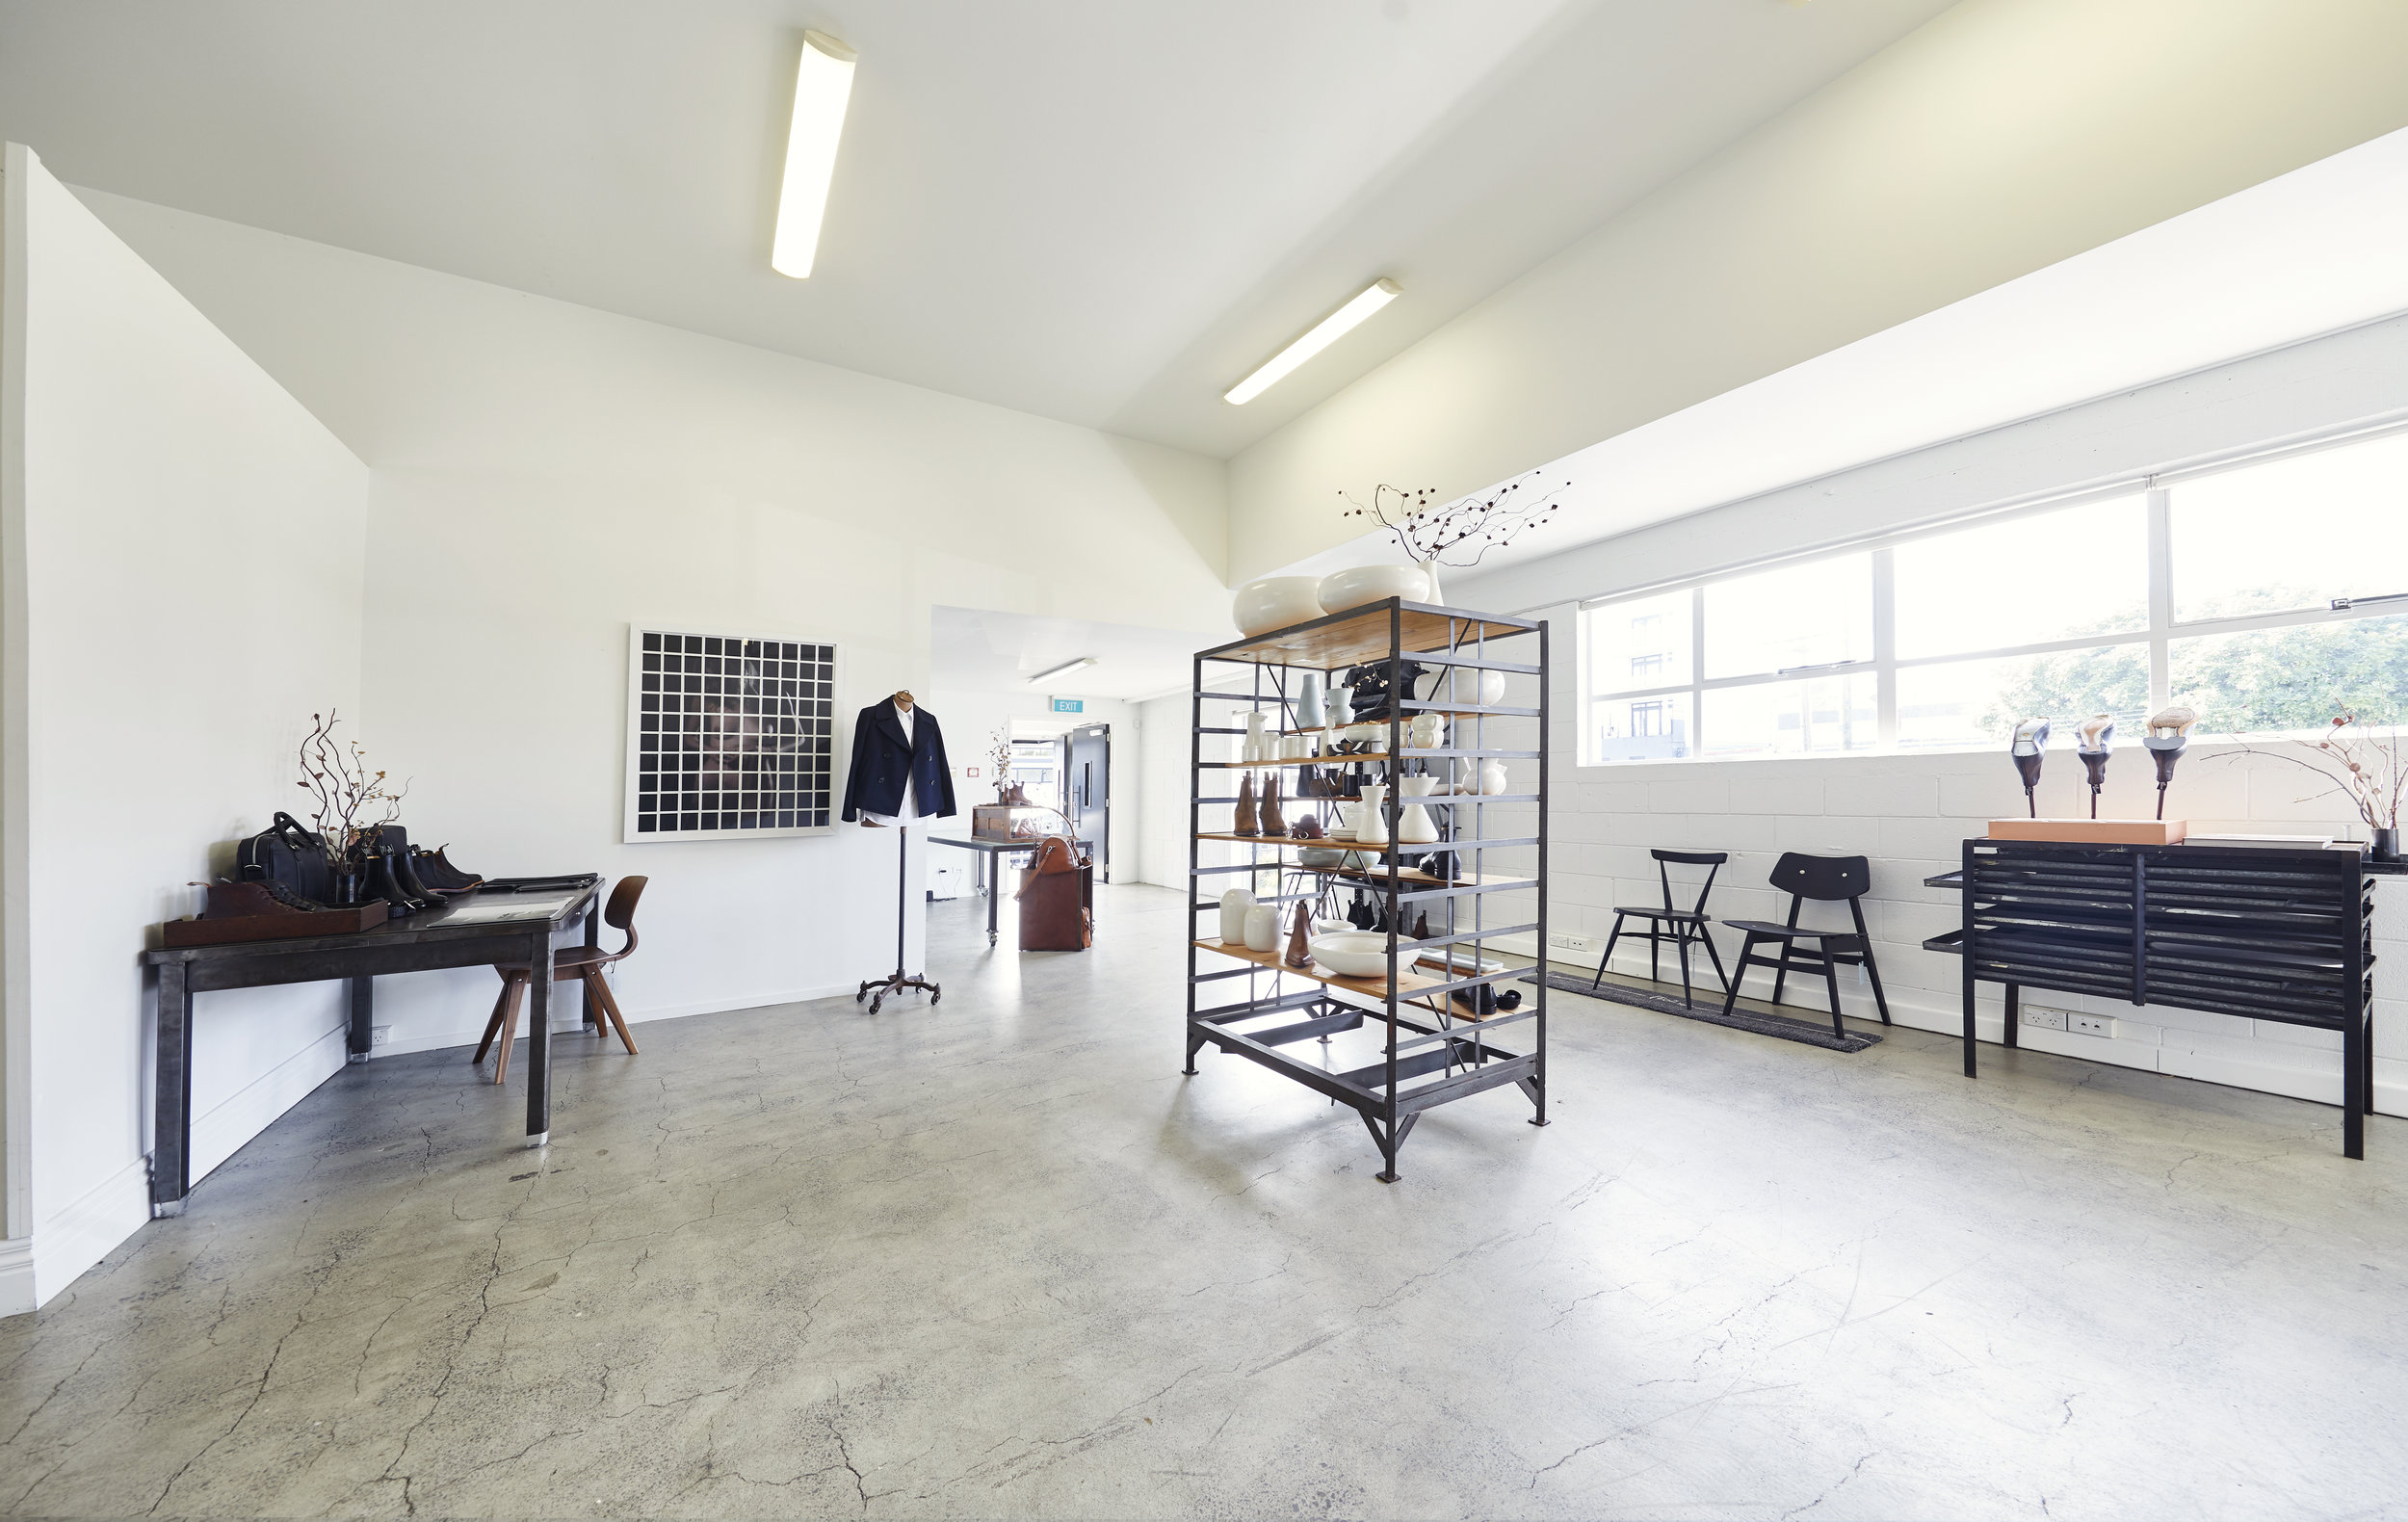 Studio 58 is an industrial character space available for hire in Ponsonby, Auckland